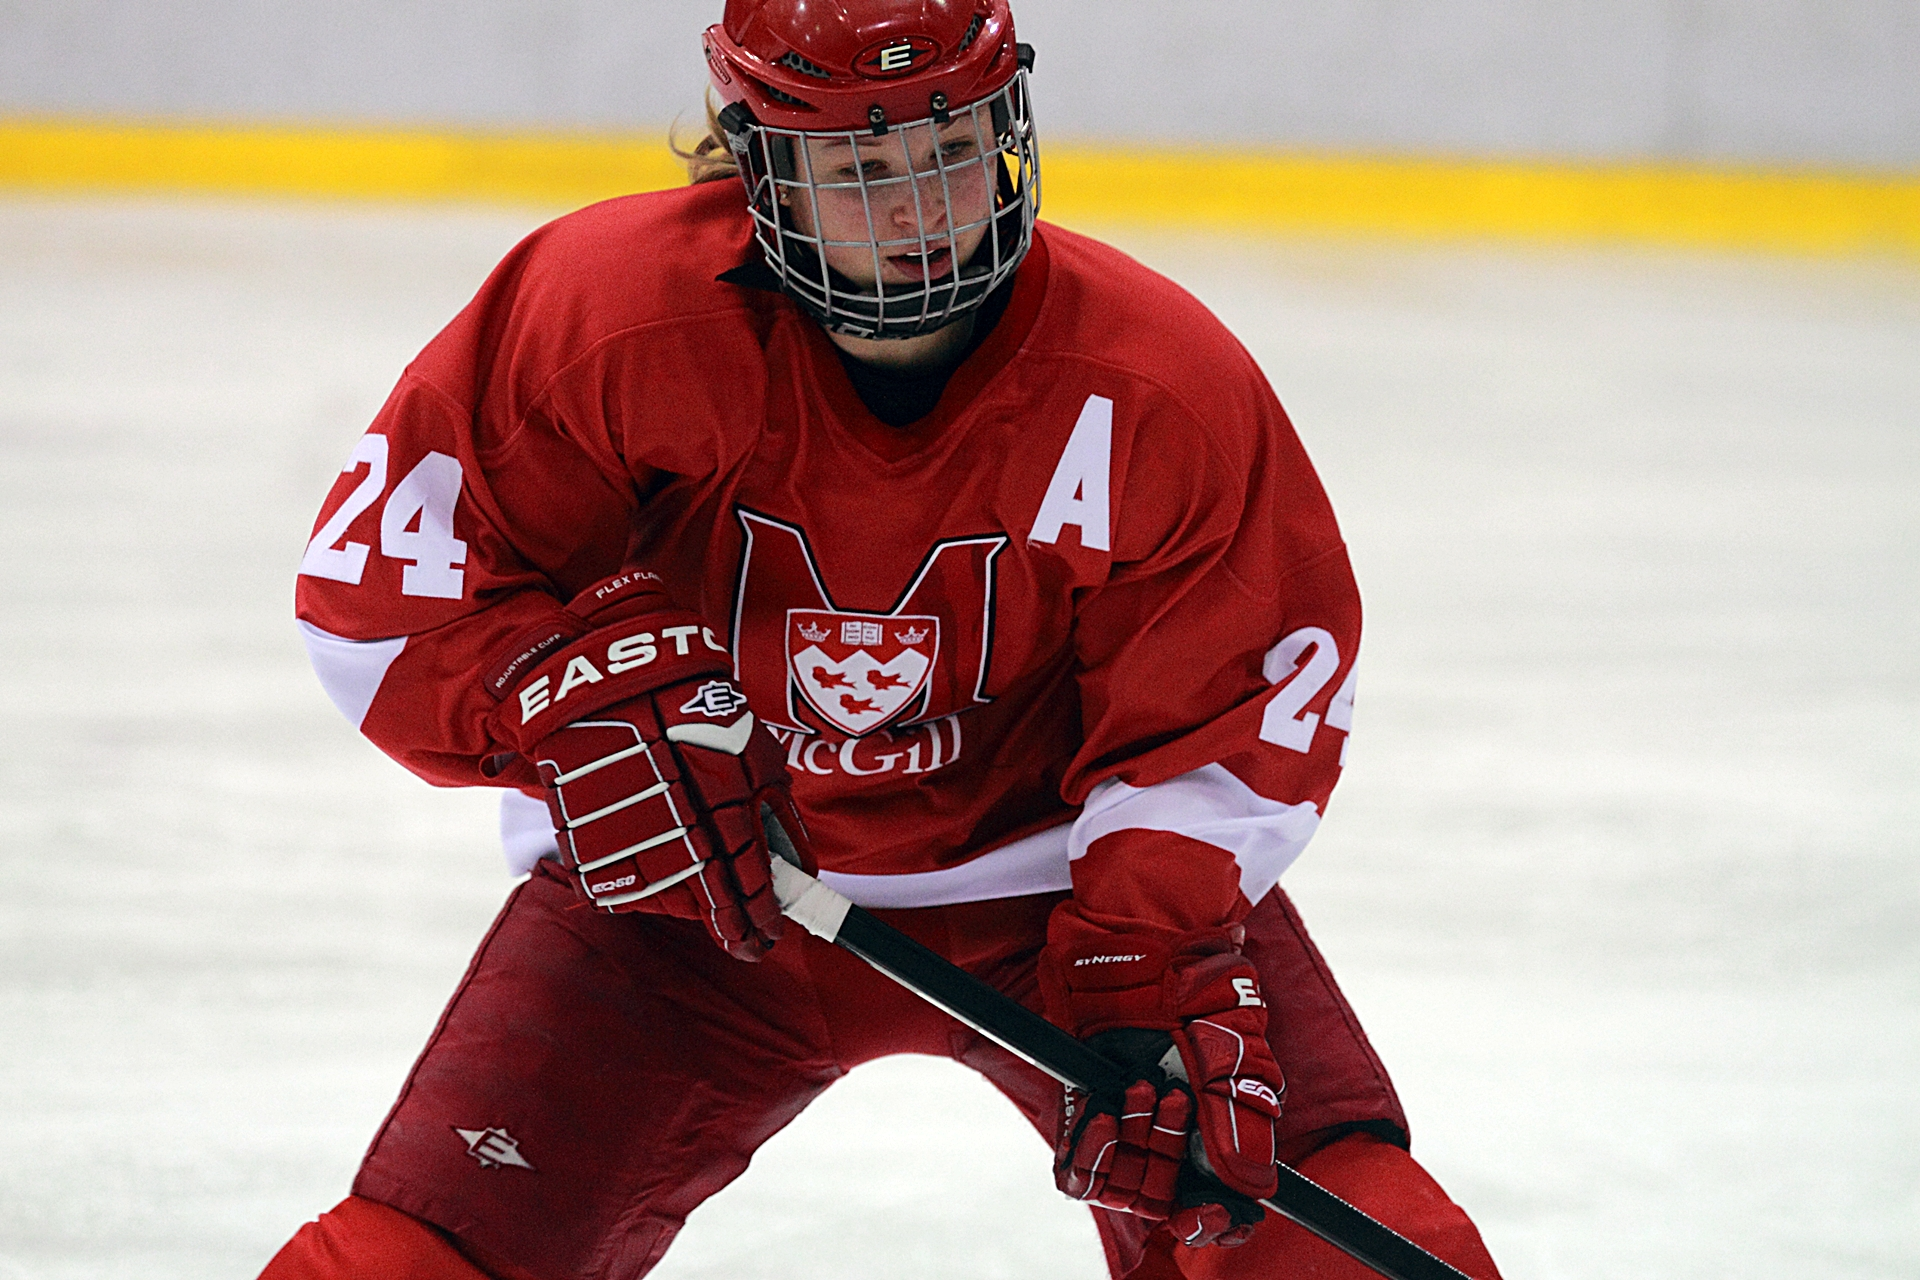 Mcgill Grad Bettez To Play For Canada In Hockey Rivalry Series Vs